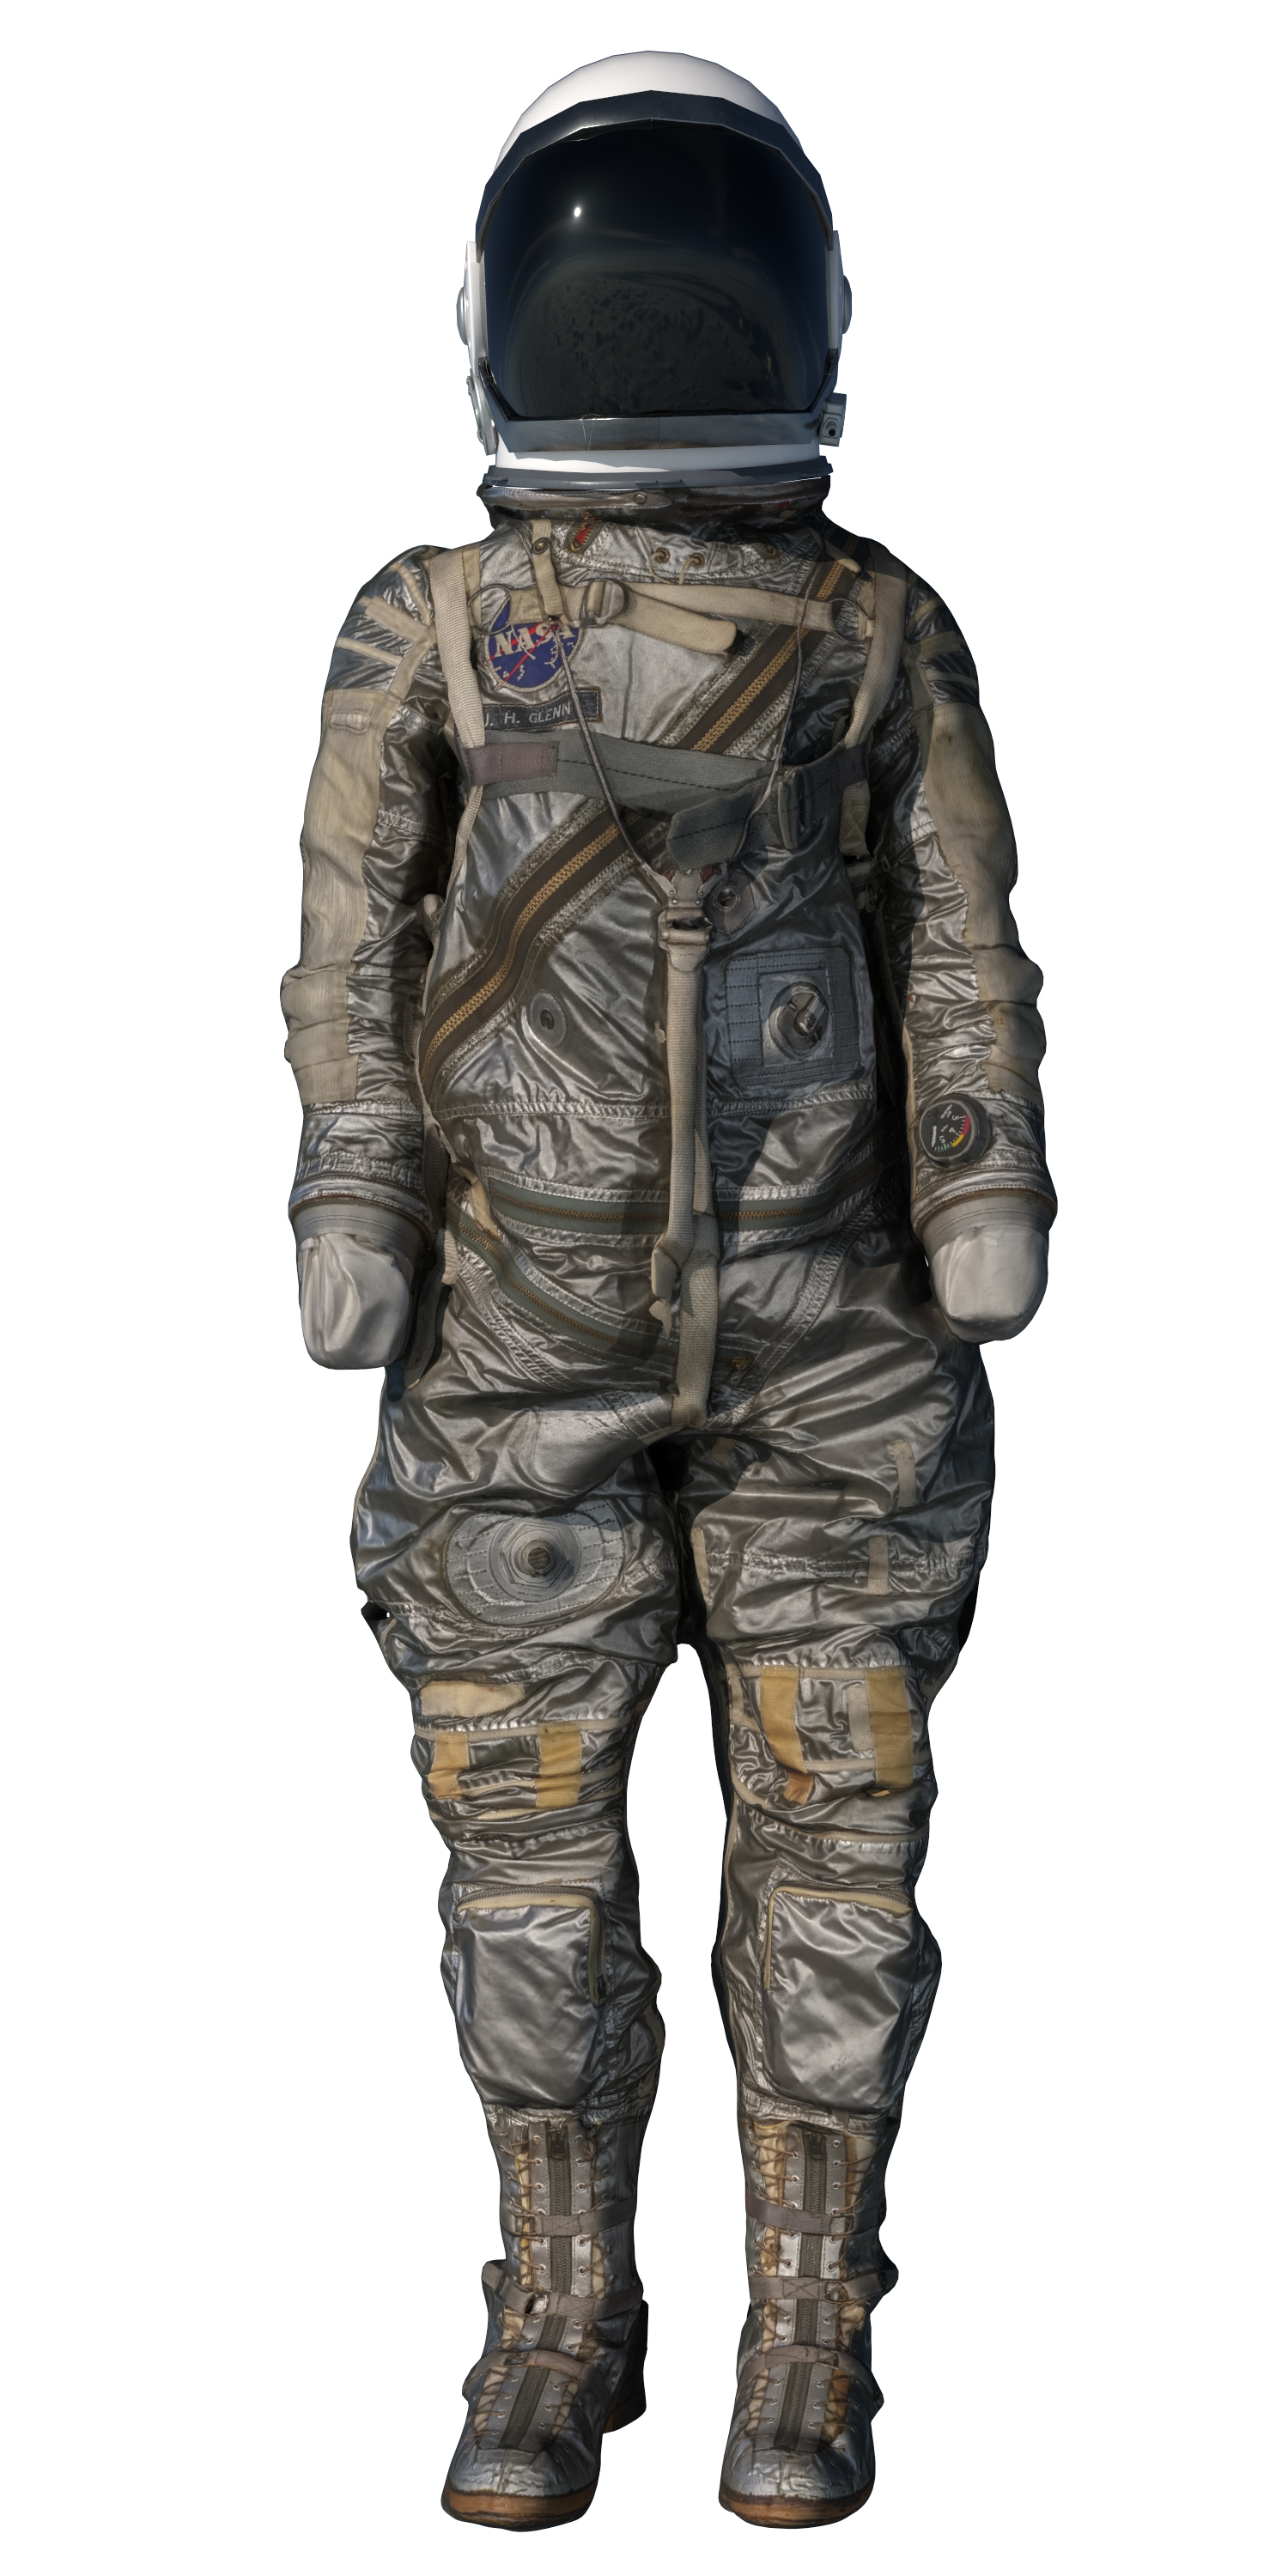 The Mercury suits developed for flights in the 1960s were modeled after the suits worn by military pilots after World War II. MUST CREDIT: The Washington Post